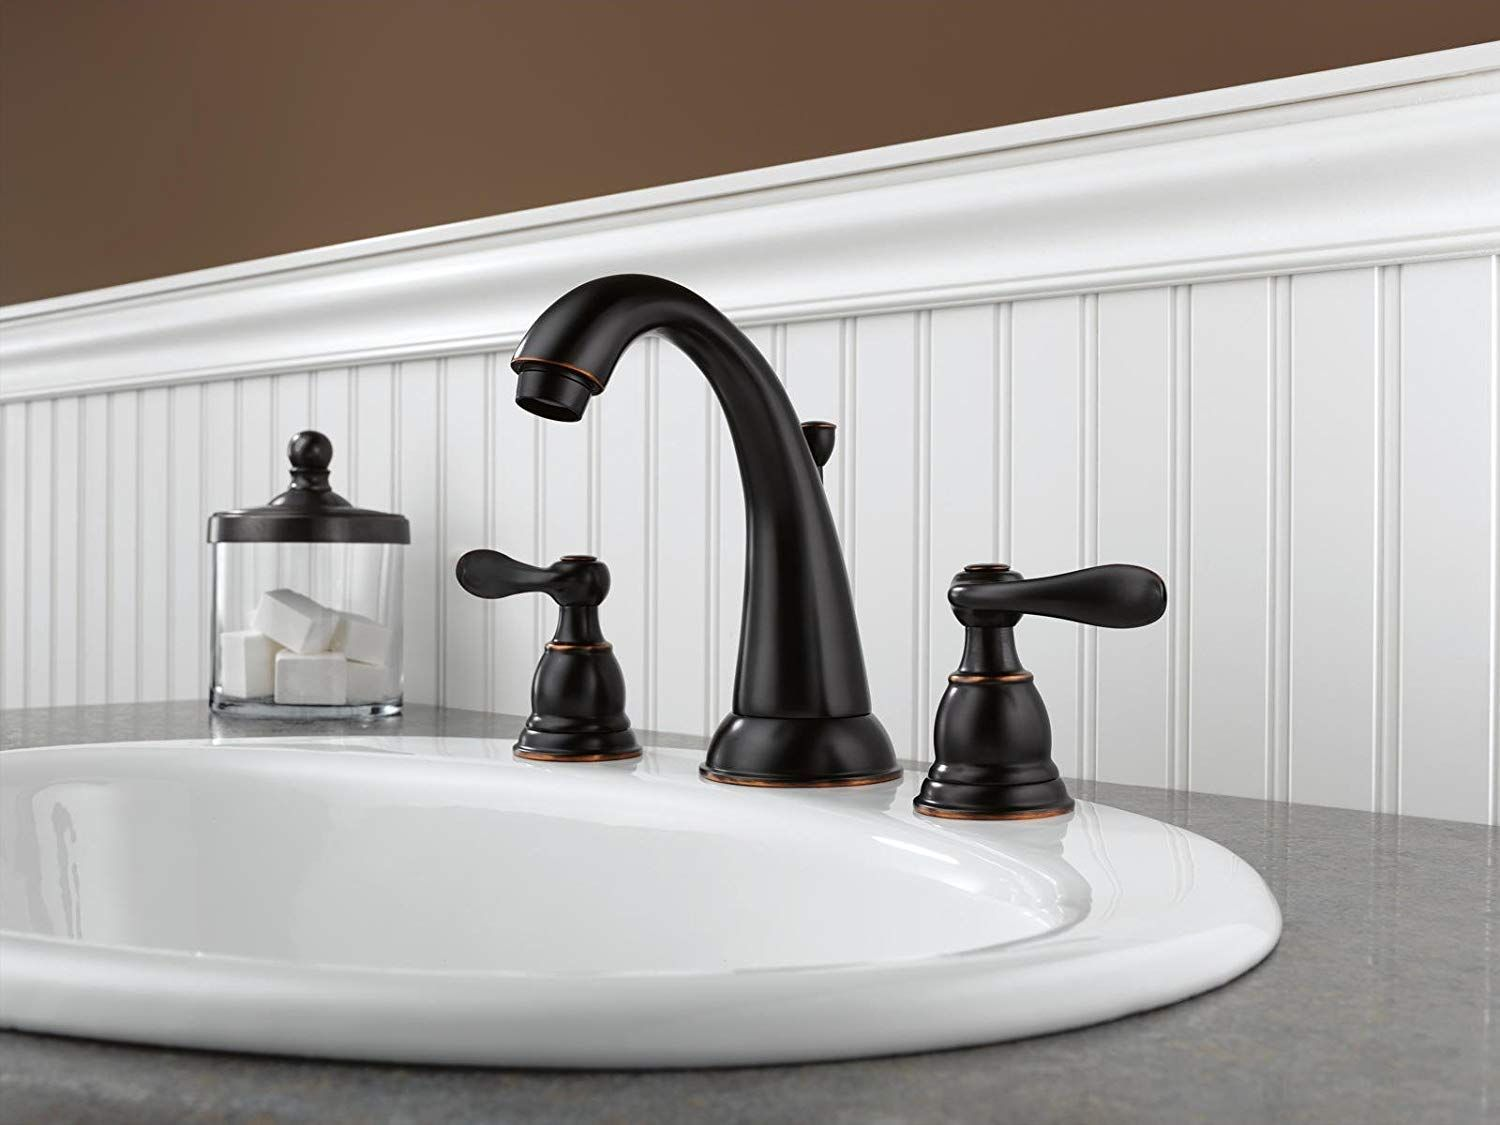 Not Only Is It A Beautiful And Cost Effective Choice For Your Bath It S A Smart Choice Widespread Bathroom Faucet Bathroom Faucets Oil Rubbed Bronze Bathroom